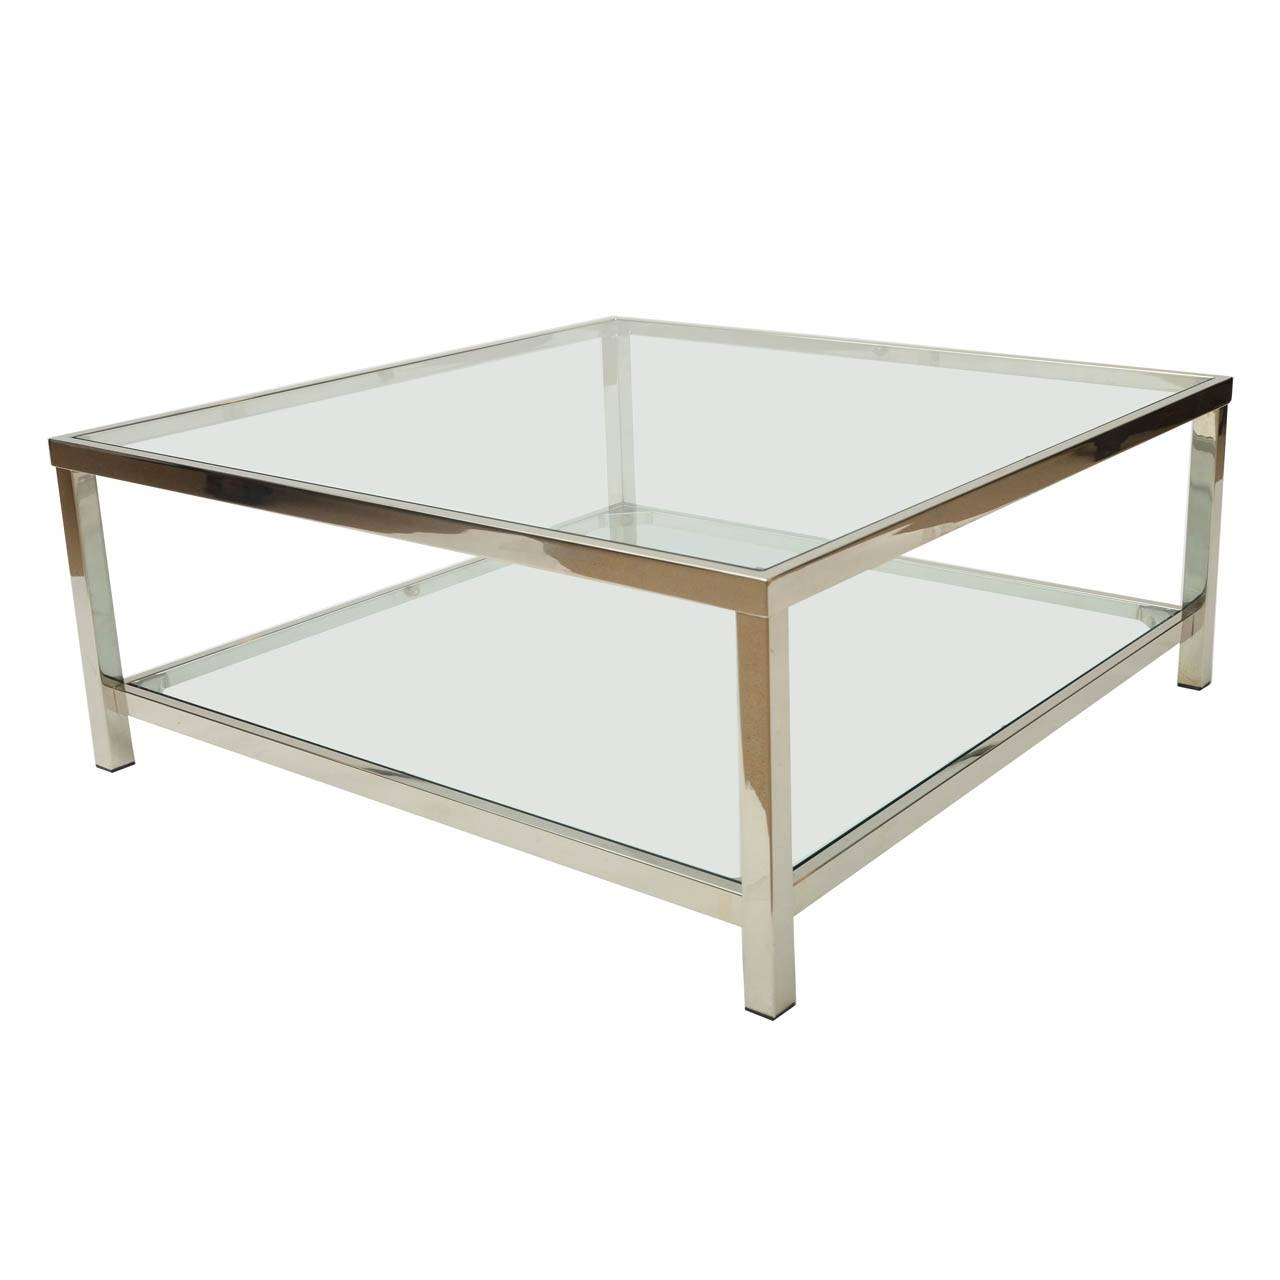 Jerome S Square Coffee Table: 15 Best Collection Of Large Glass Coffee Tables